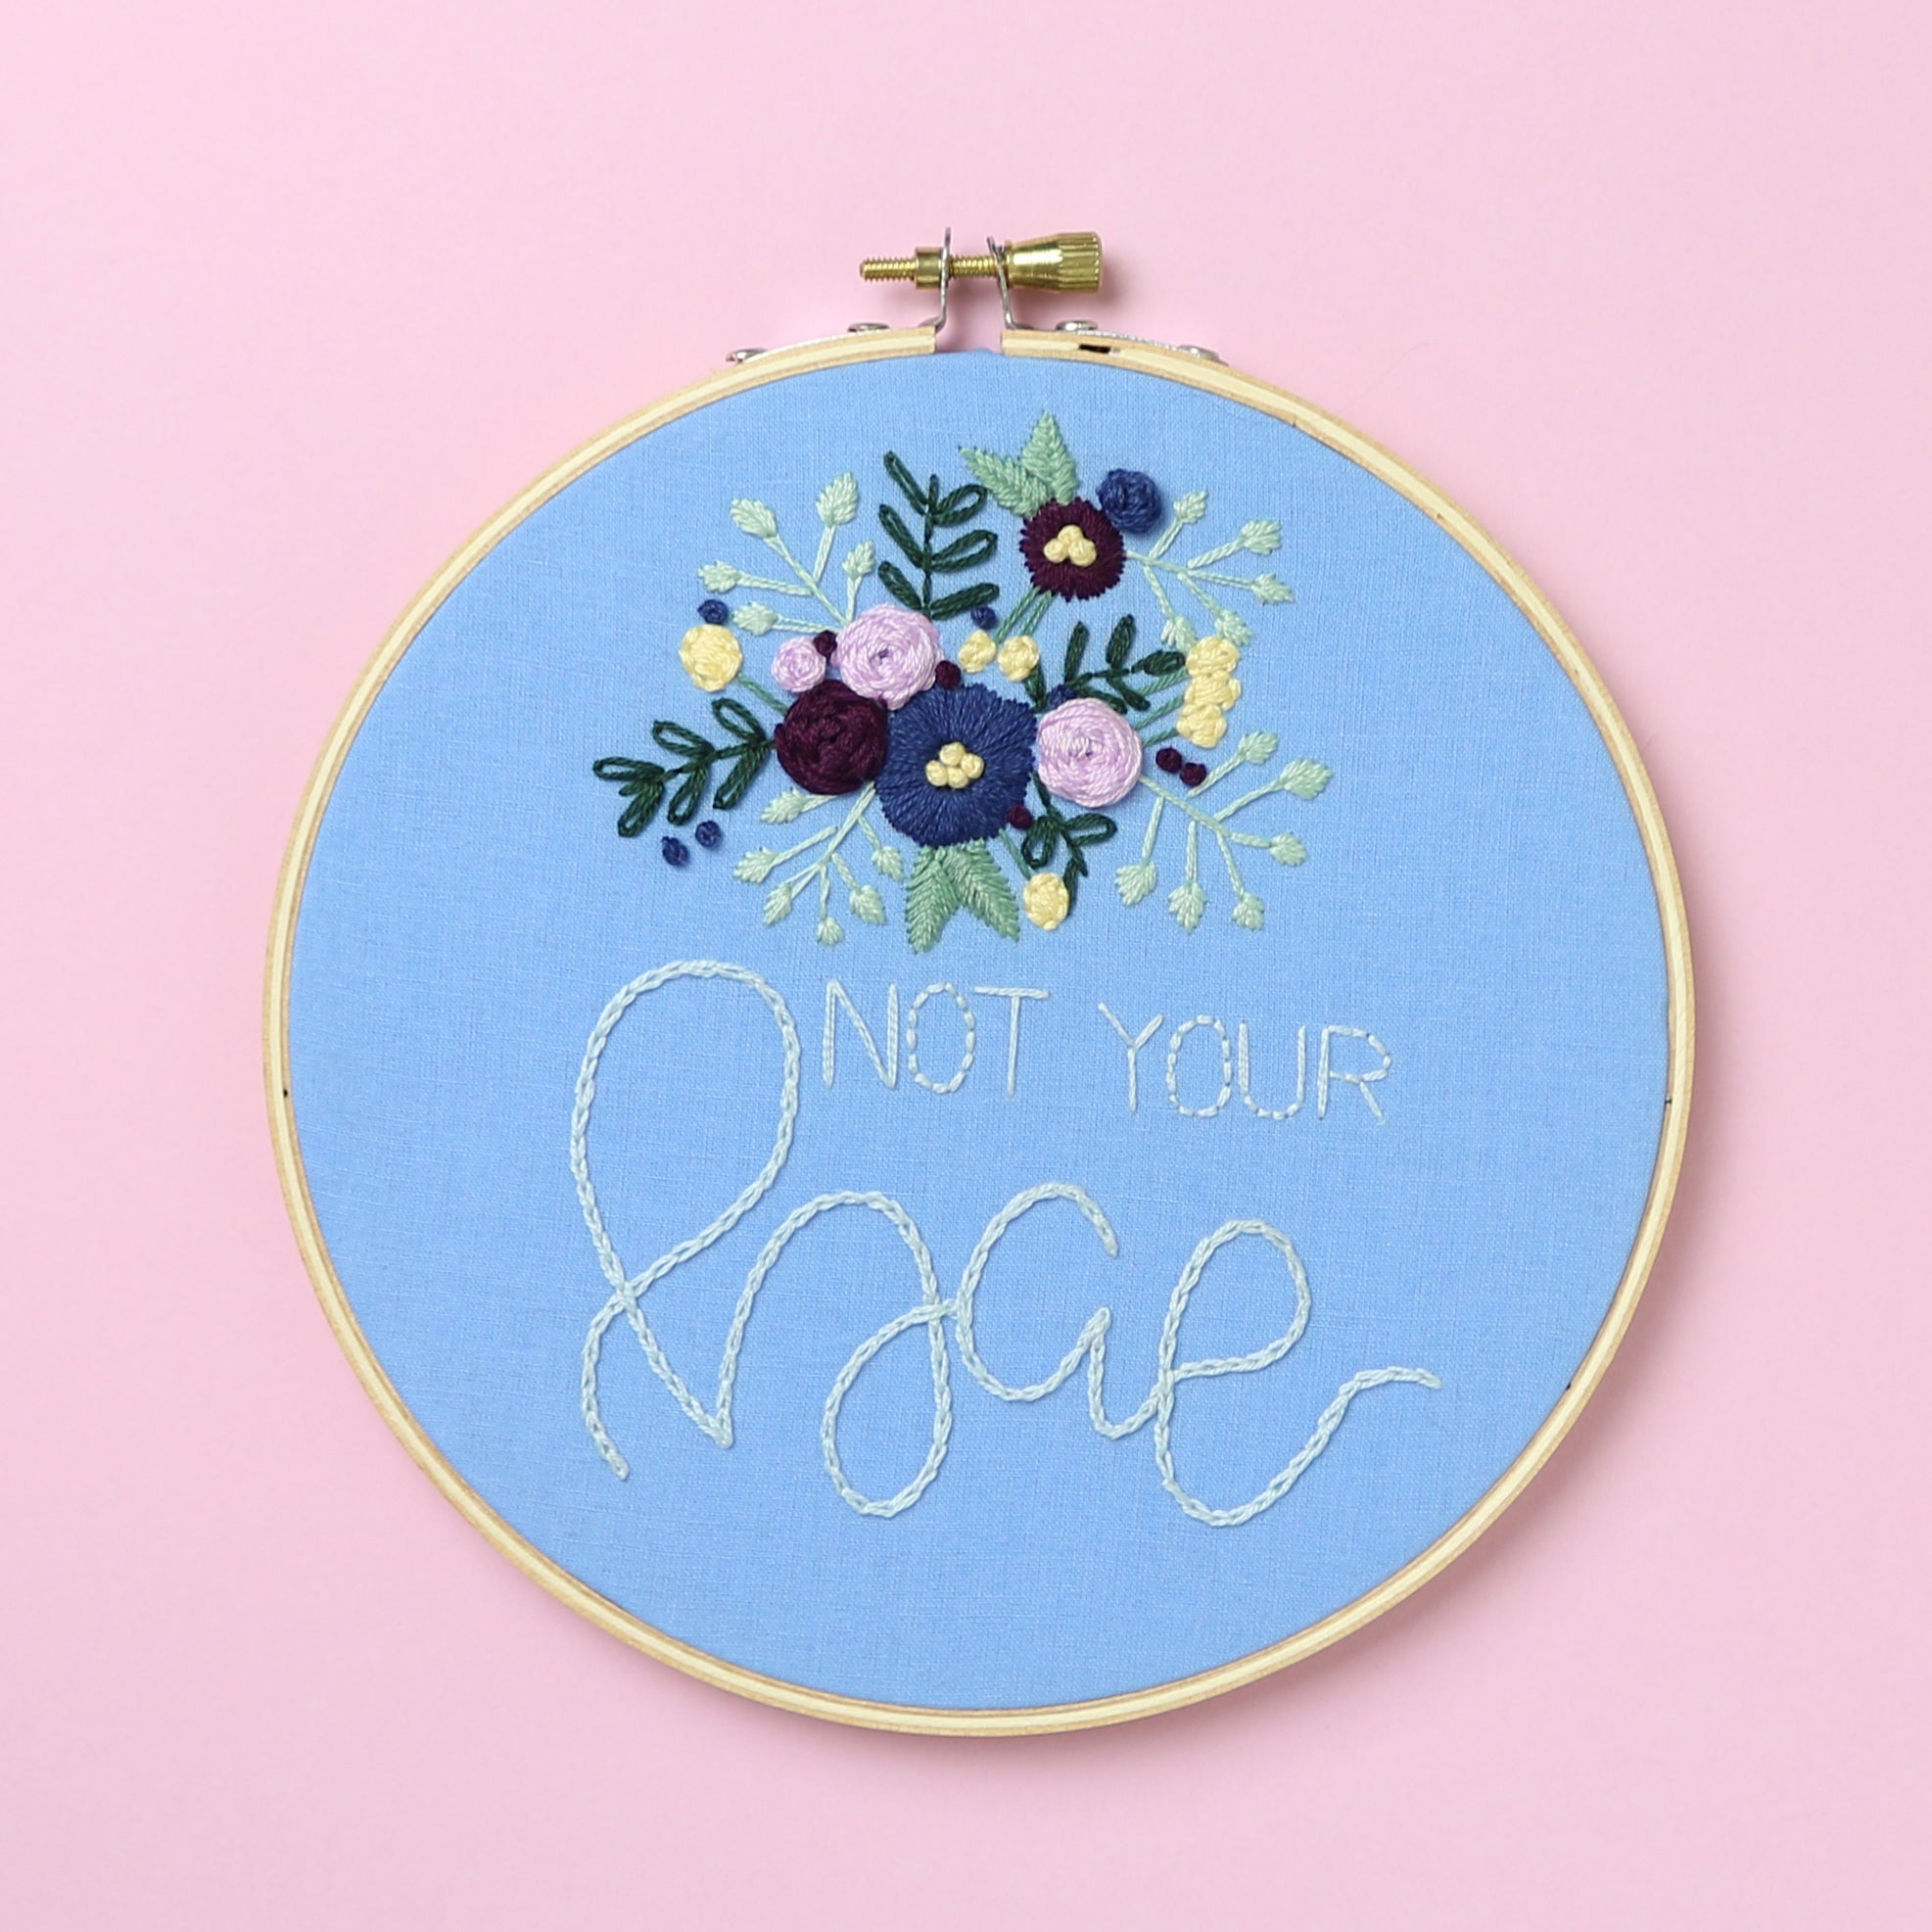 Not Your Bae Embroidery Hoop